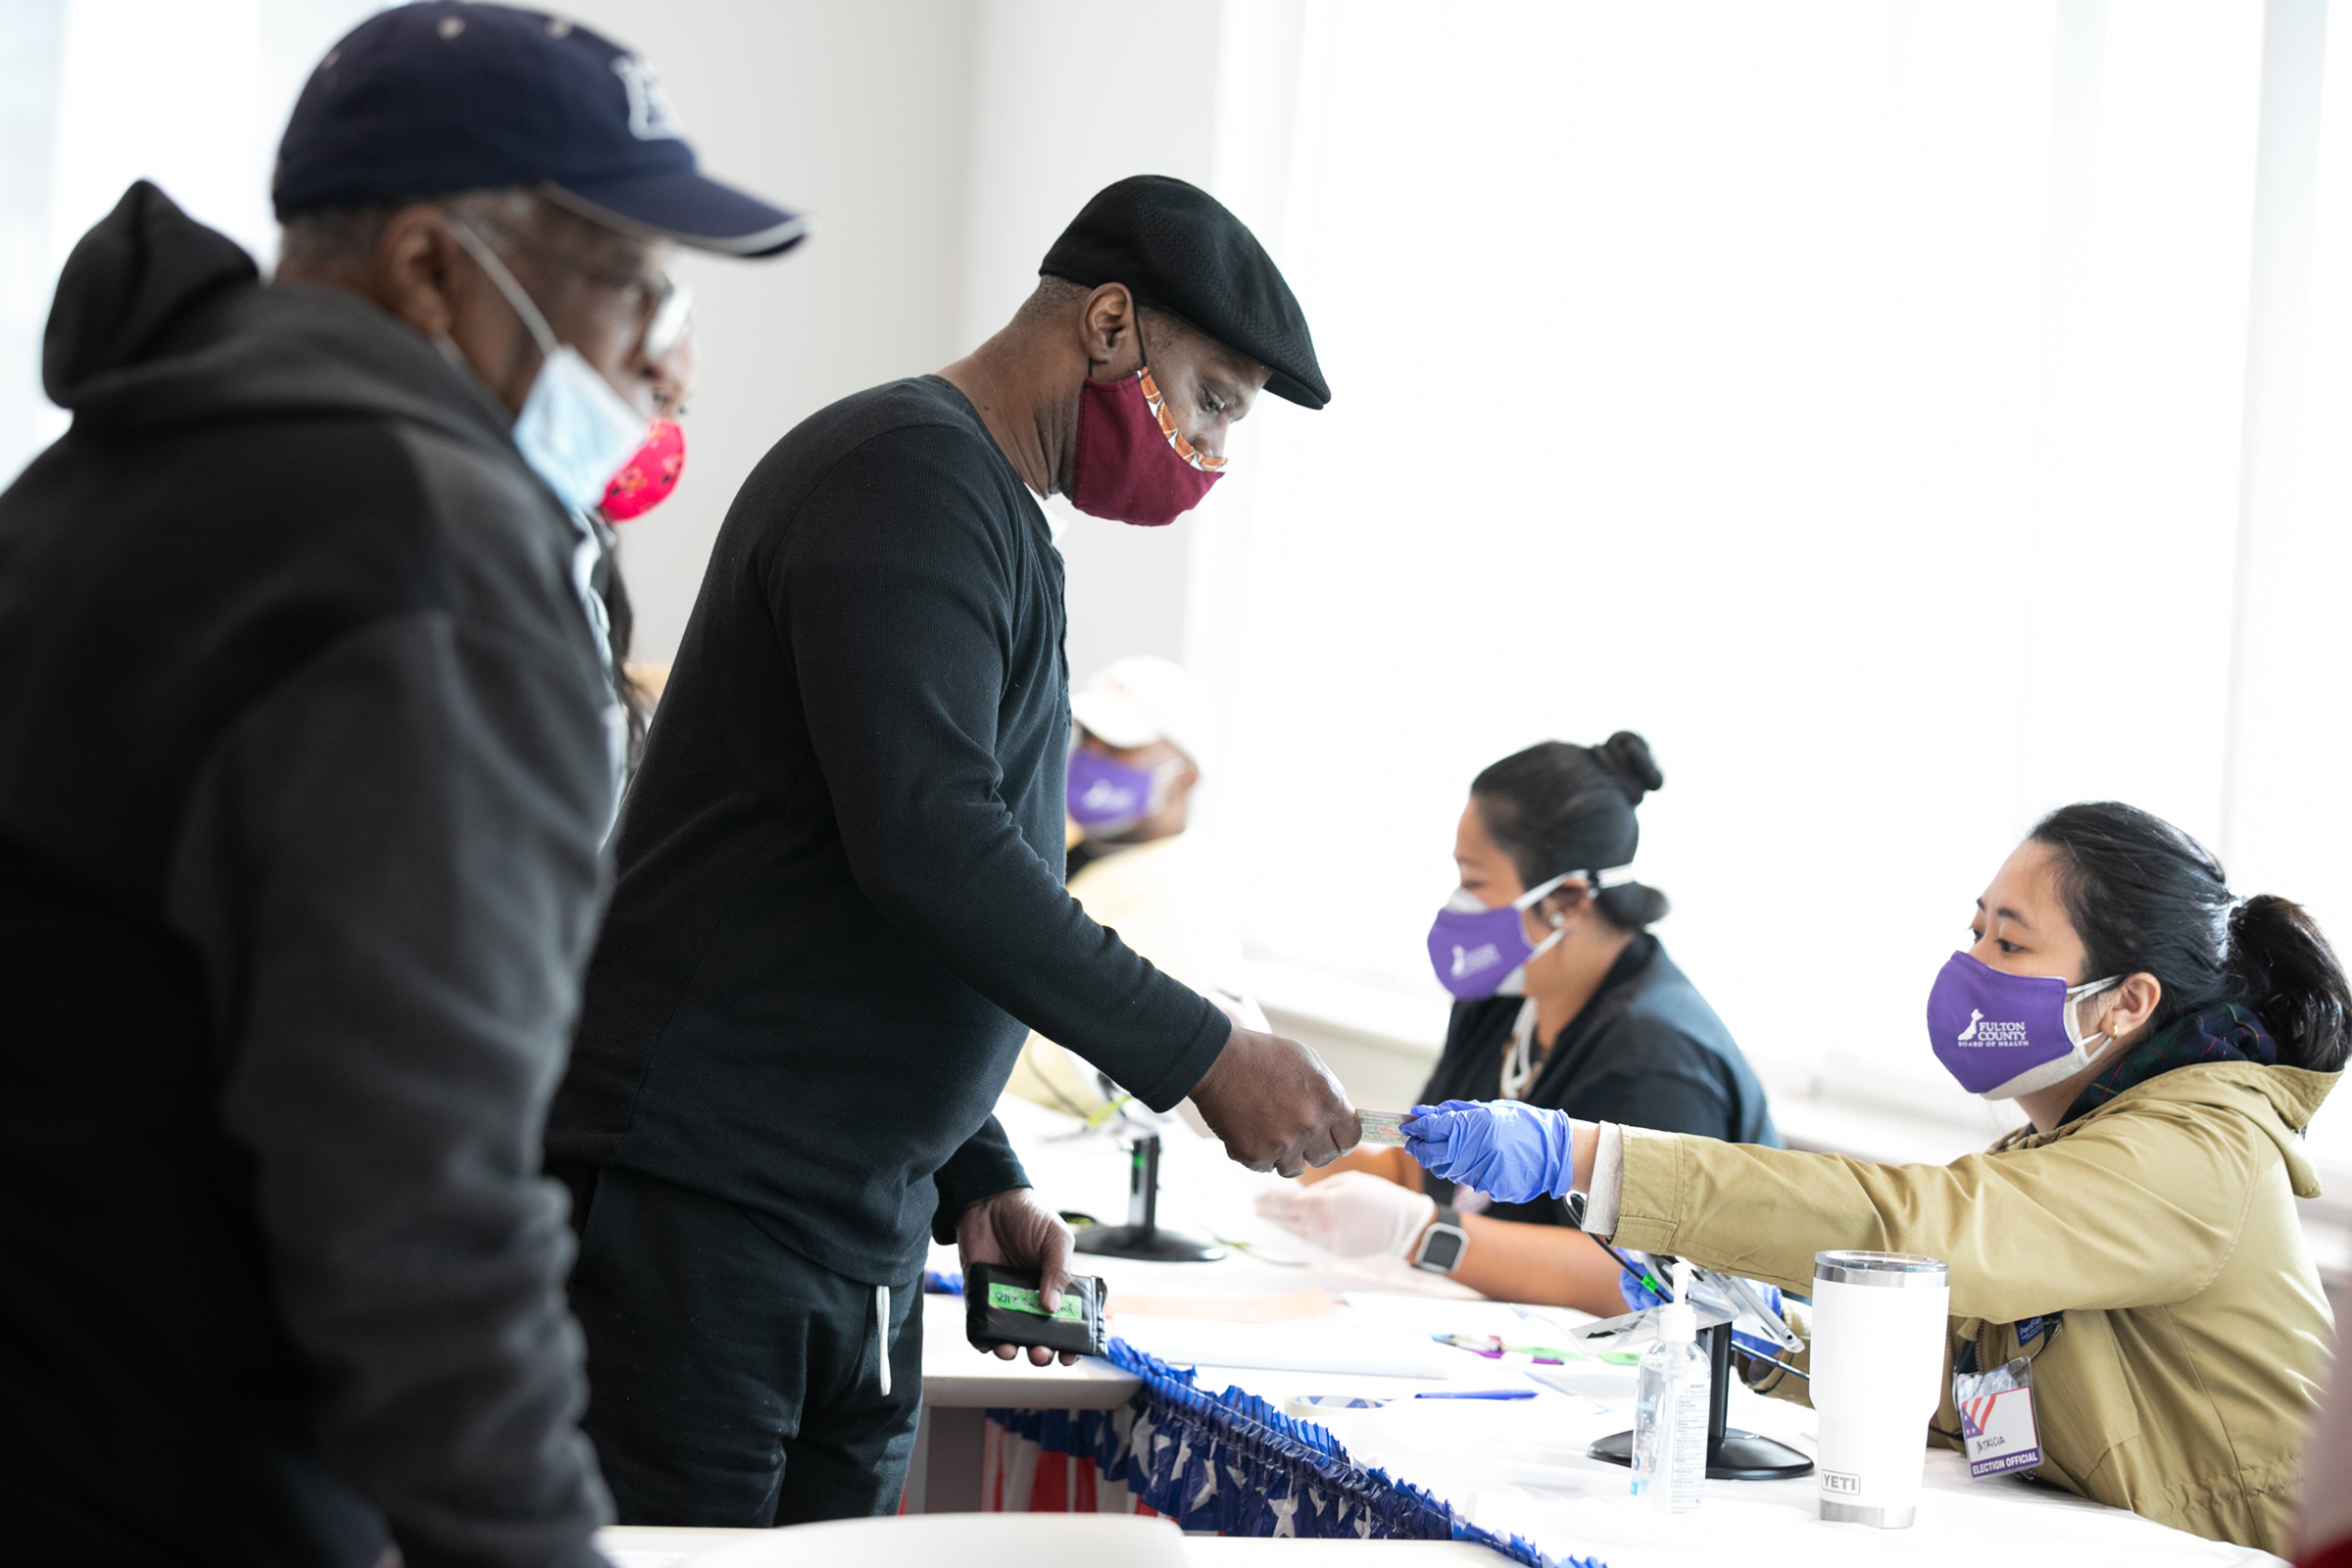 Voters check-in with poll workers to cast their ballots in Atlanta on Nov. 3, 2020.